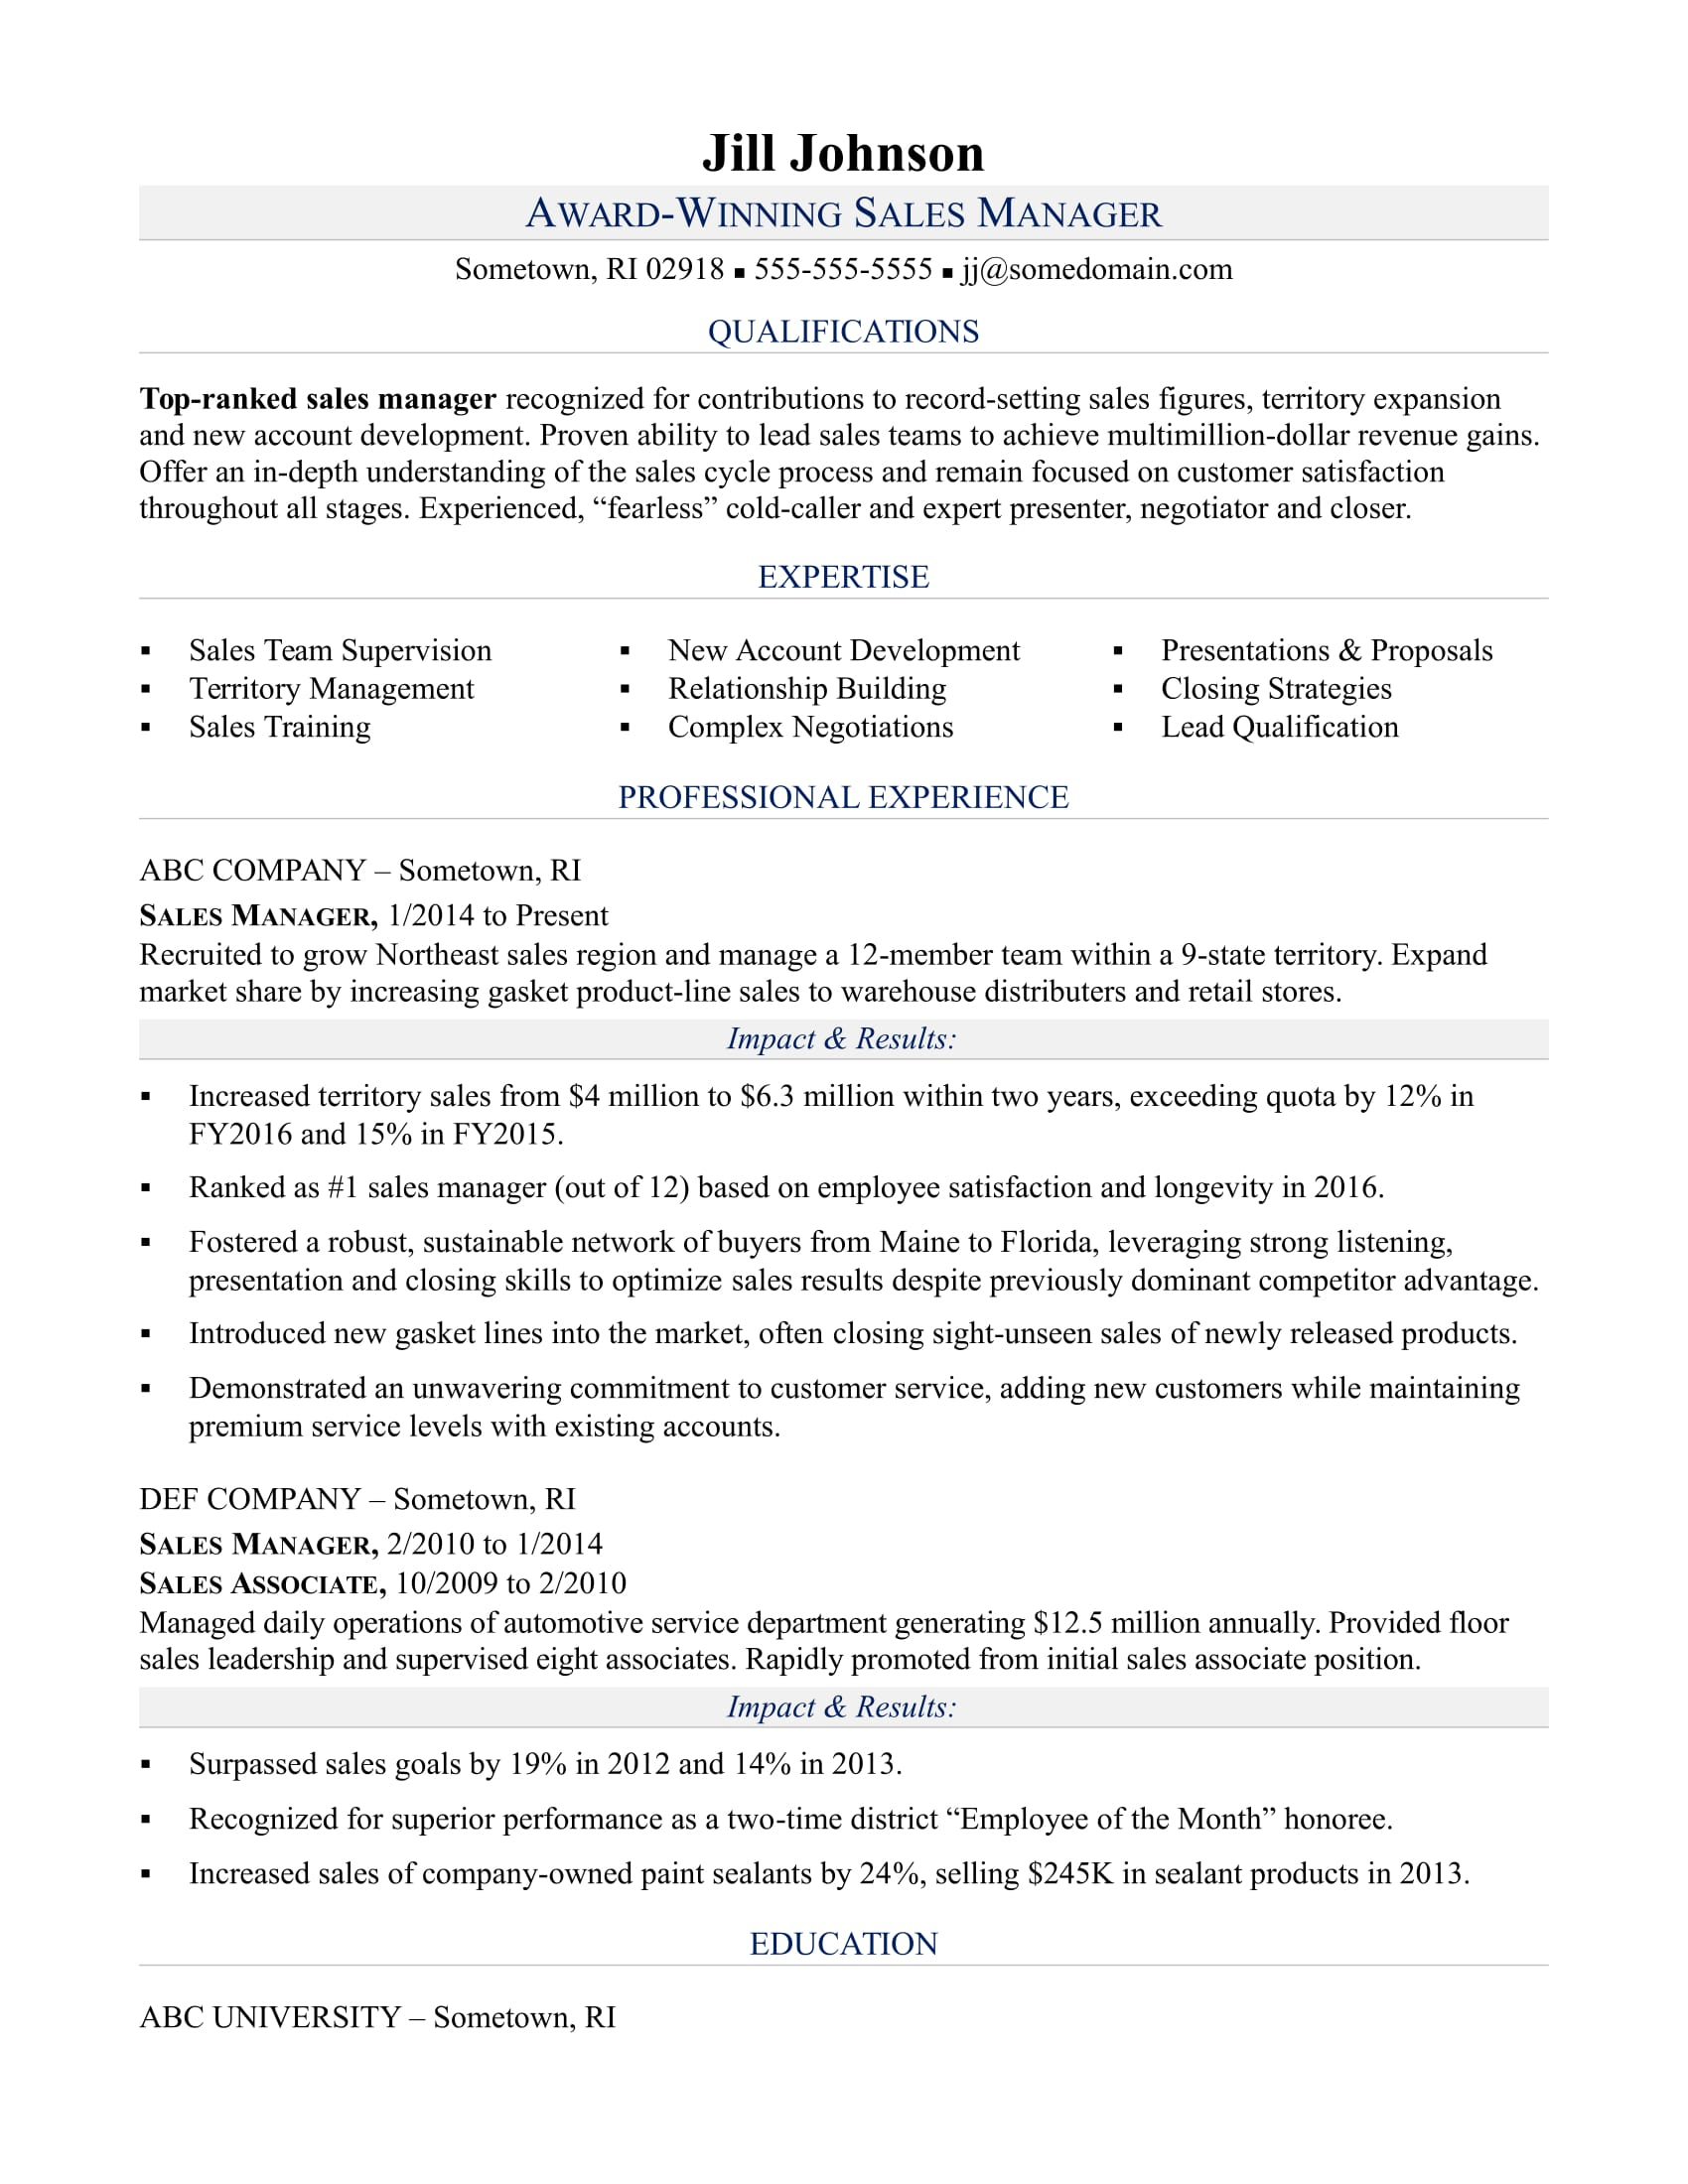 resume Sales Manager Resume Samples sales manager resume sample monster com for a manager